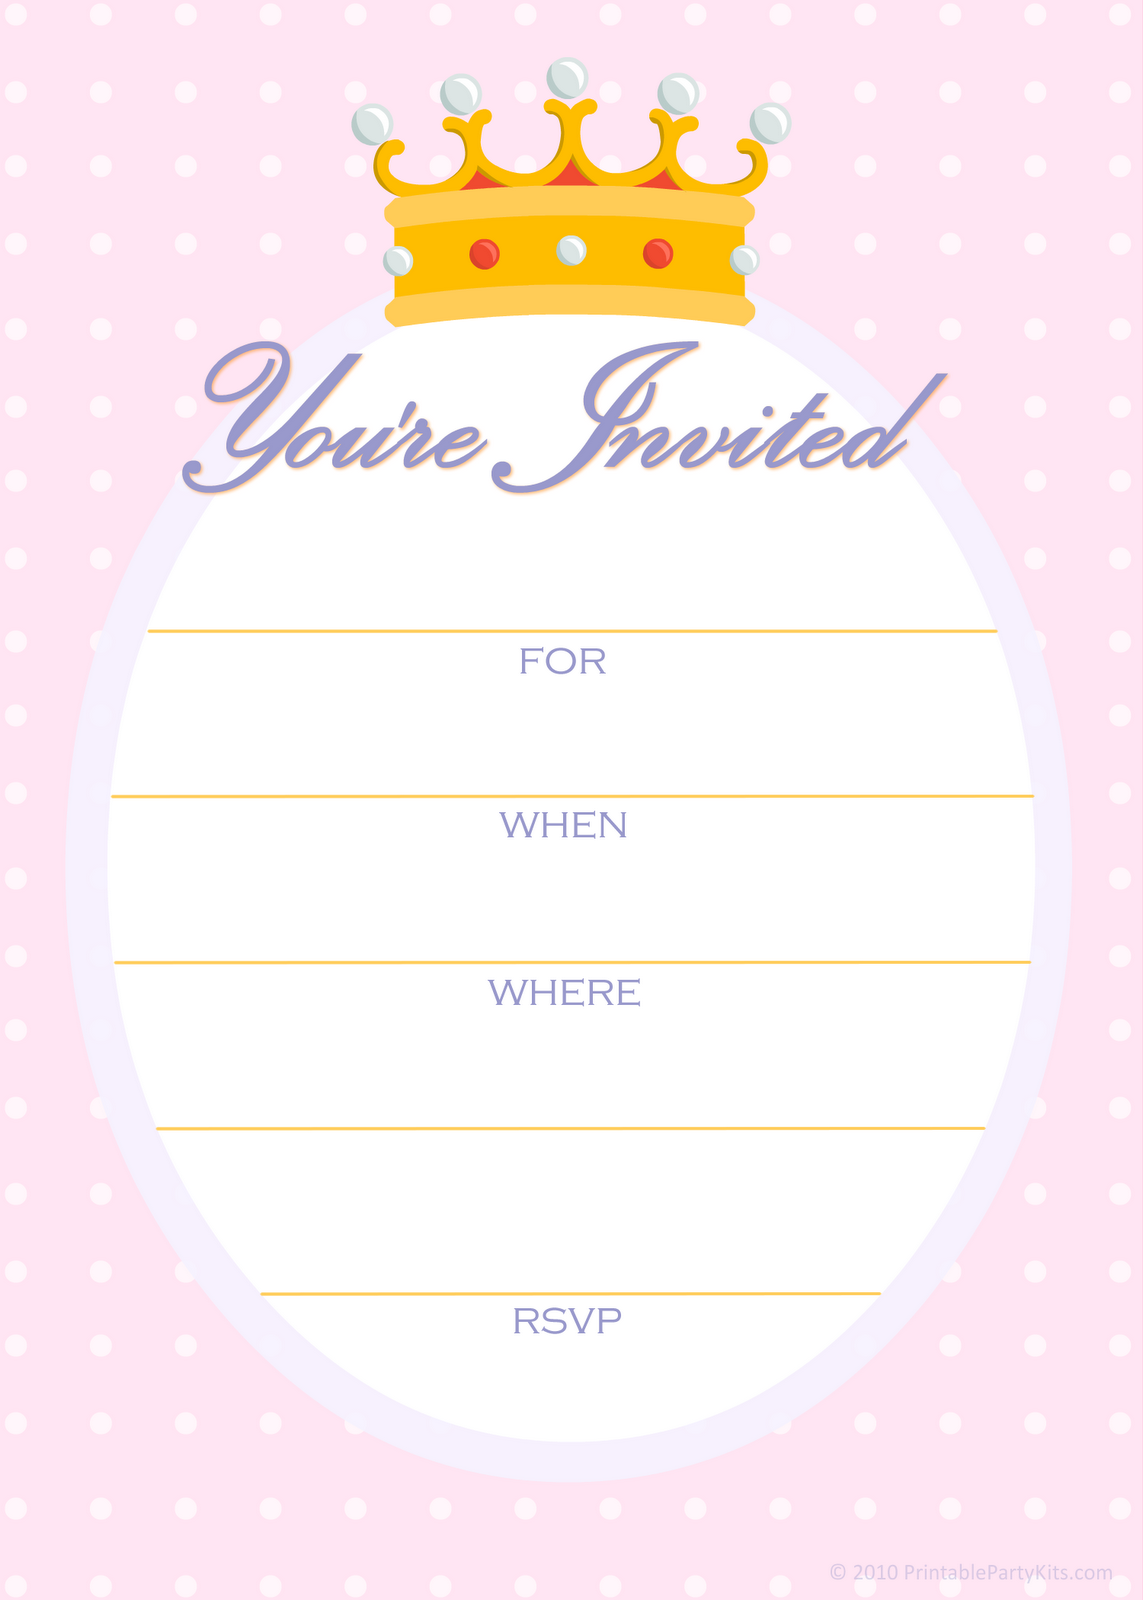 Free Printable Party Invitations Free Invitations For A Princess - Free printable birthday party invitations templates